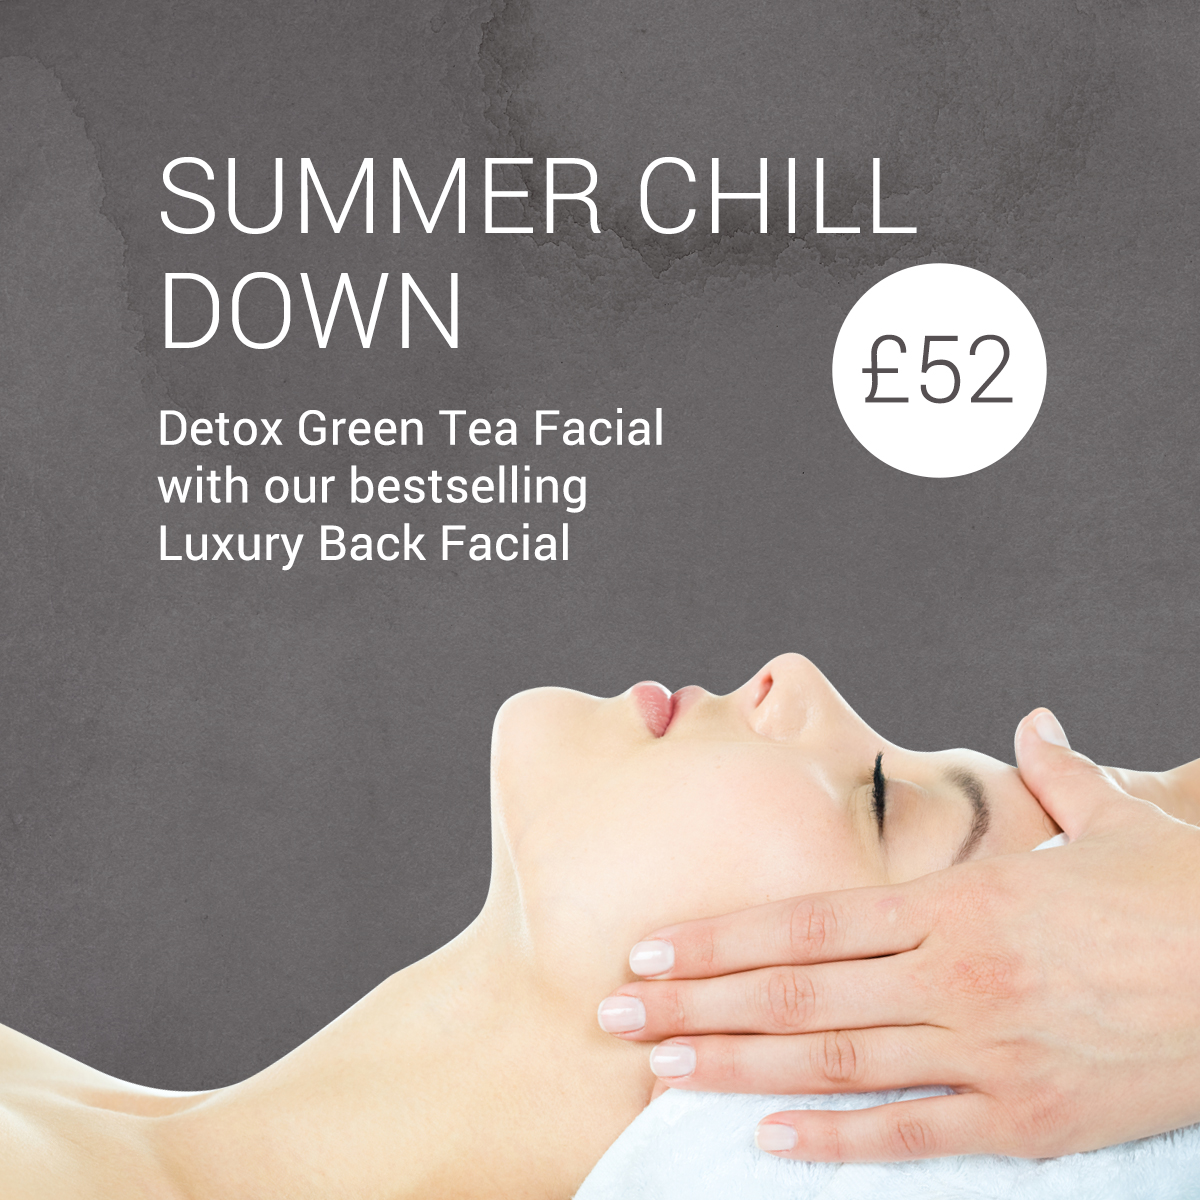 detox green tea facial offer cheshire